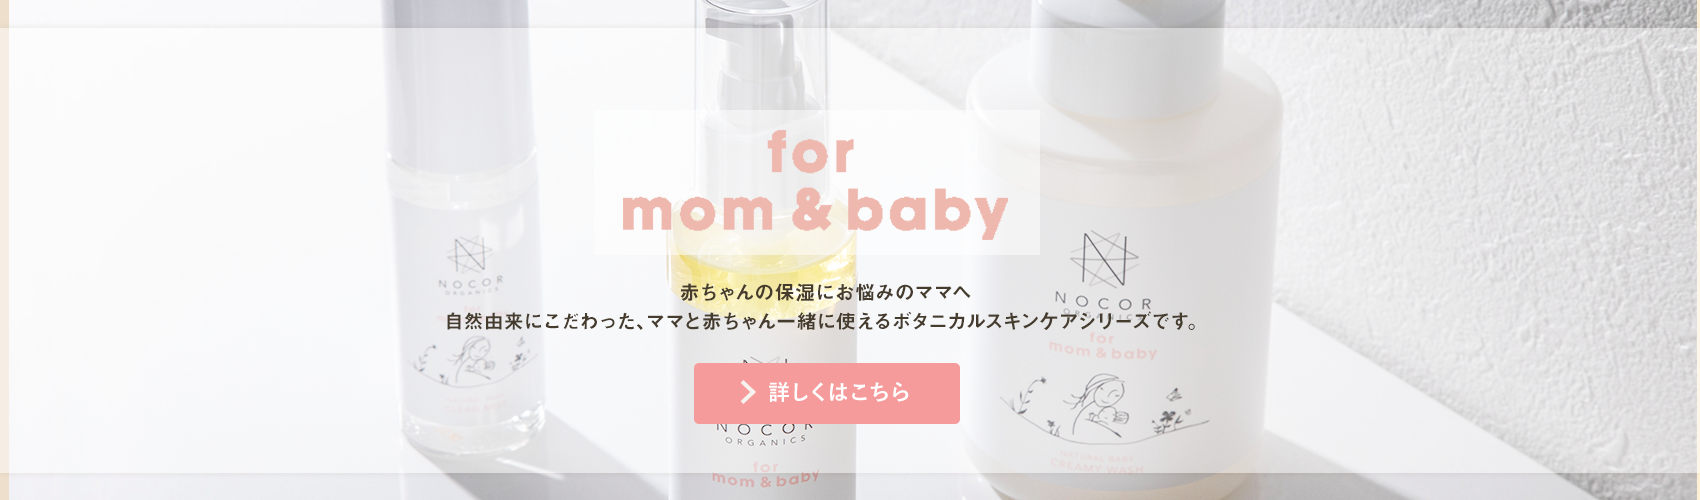 for mom&baby